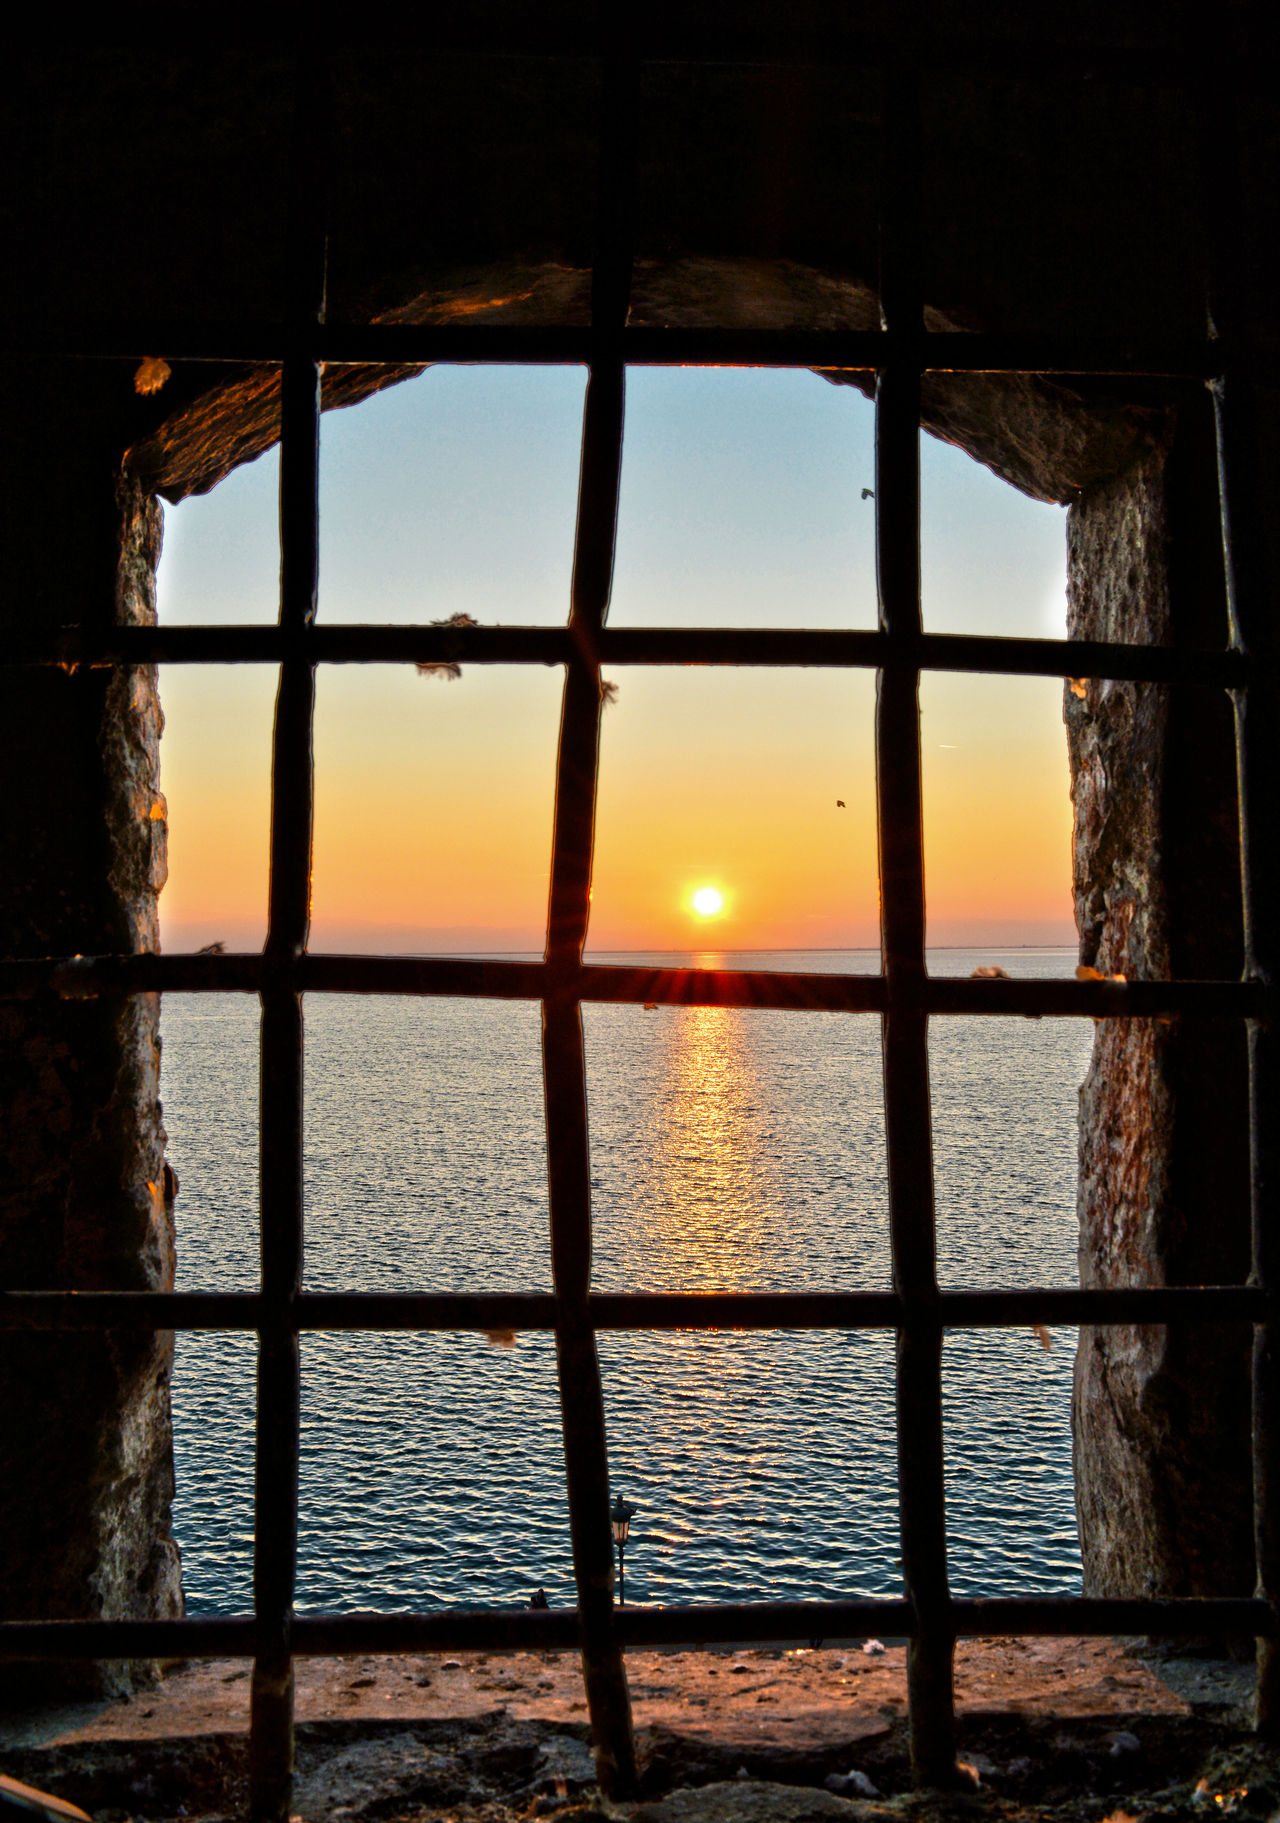 Behind Bars Architecture Beach Beauty In Nature Day Greece Horizon Over Water Insideout Museum Nature No People Old Buildings Old Prison Prison Sea Sky Sun Sunlight Sunset Thessaloniki Water White Tower White Tower Of Thessaloniki Window